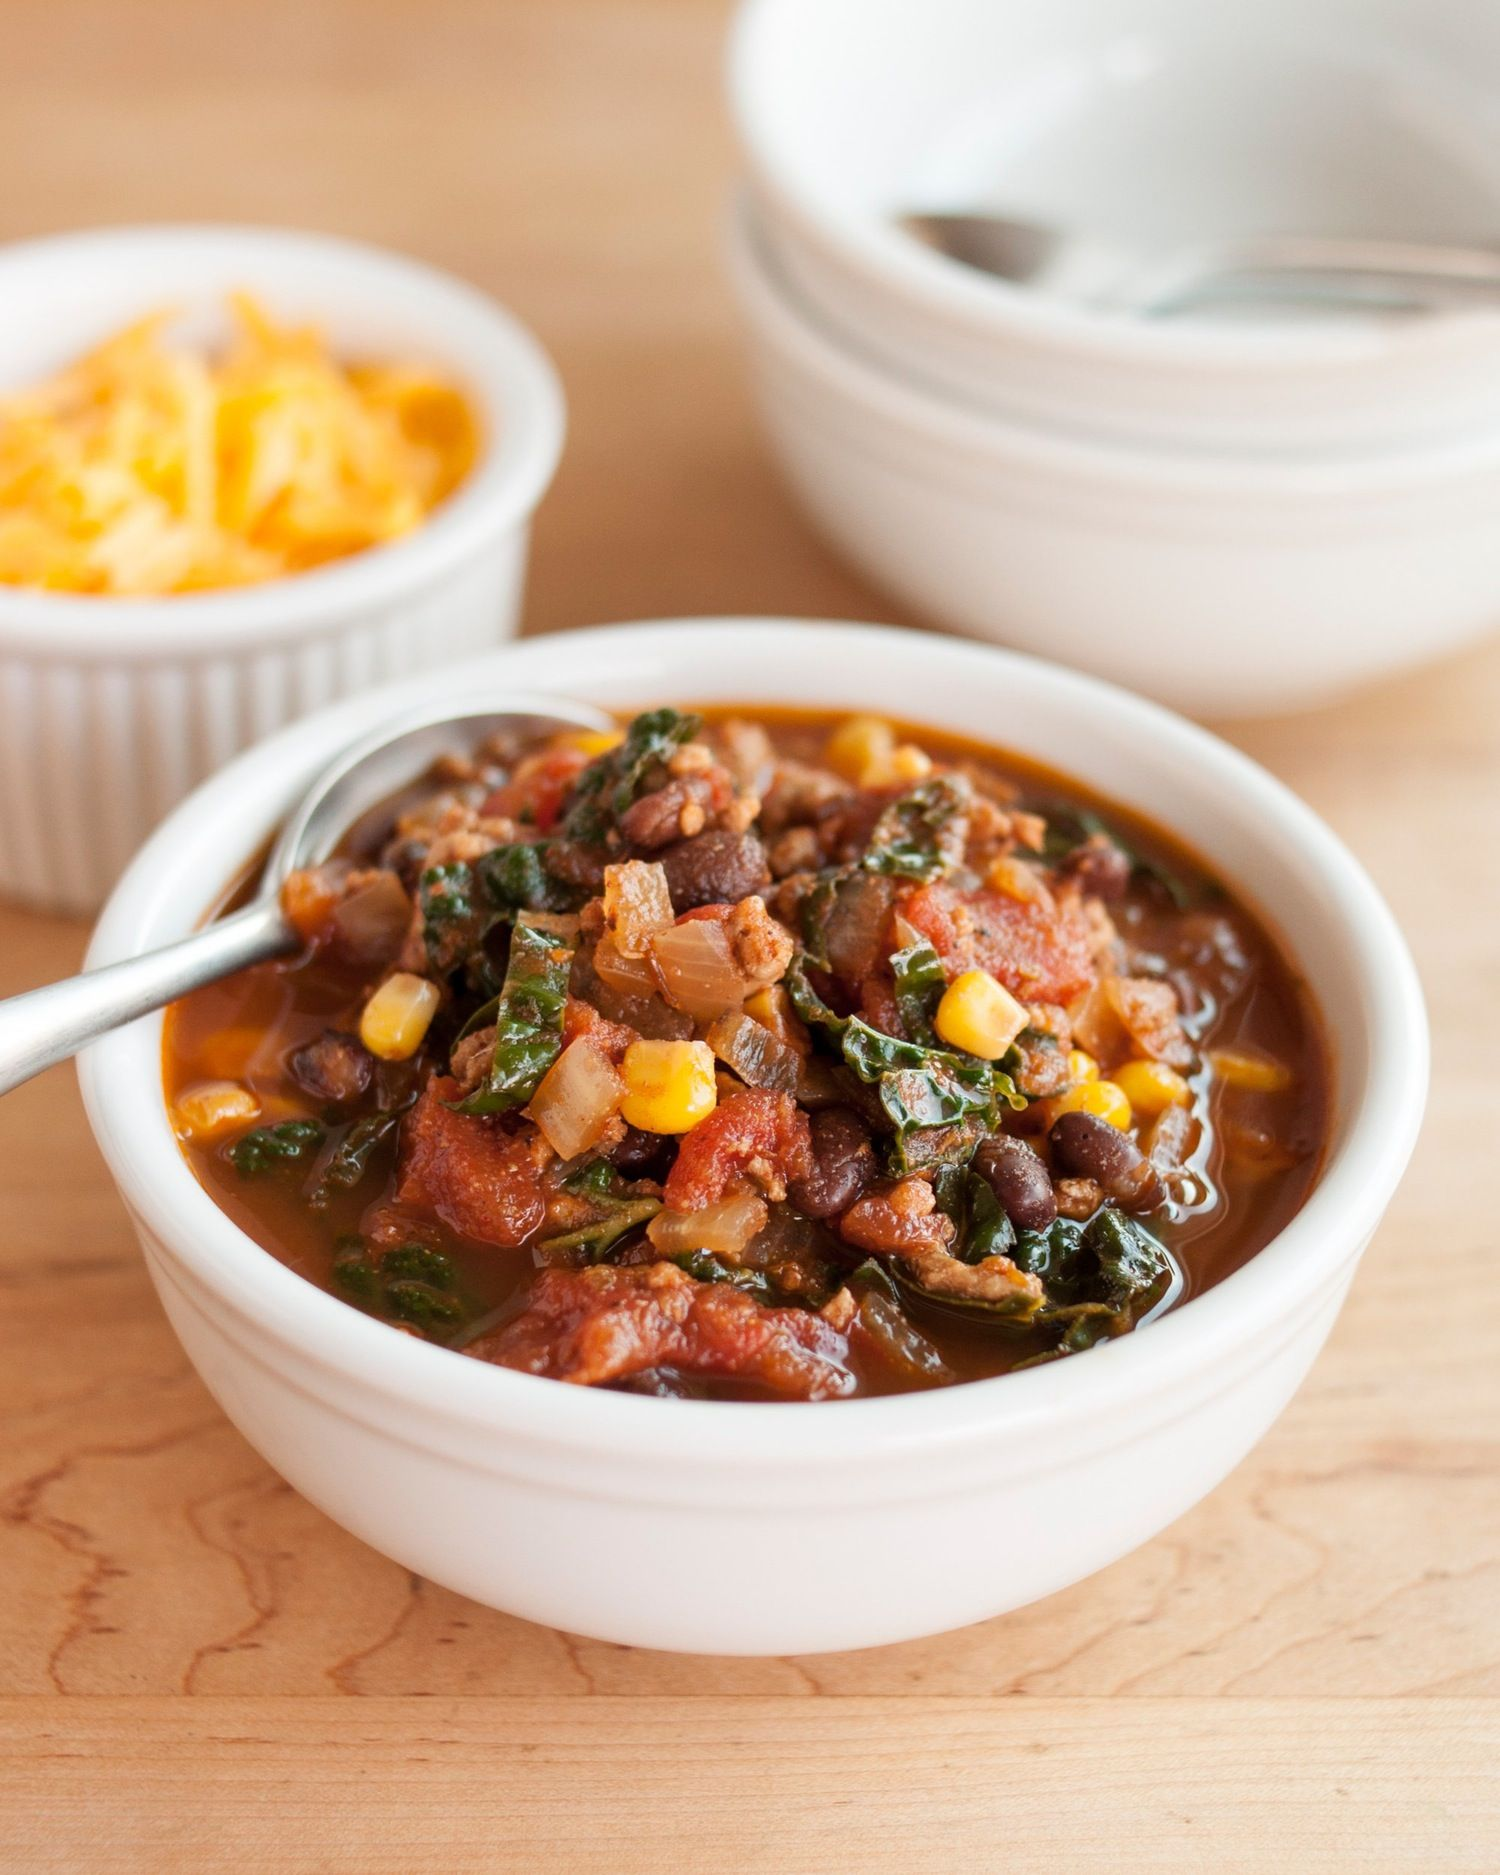 10 Easy Ground Turkey Recipes Chili Burgers Meatloaf: Easy Turkey Chili With Kale